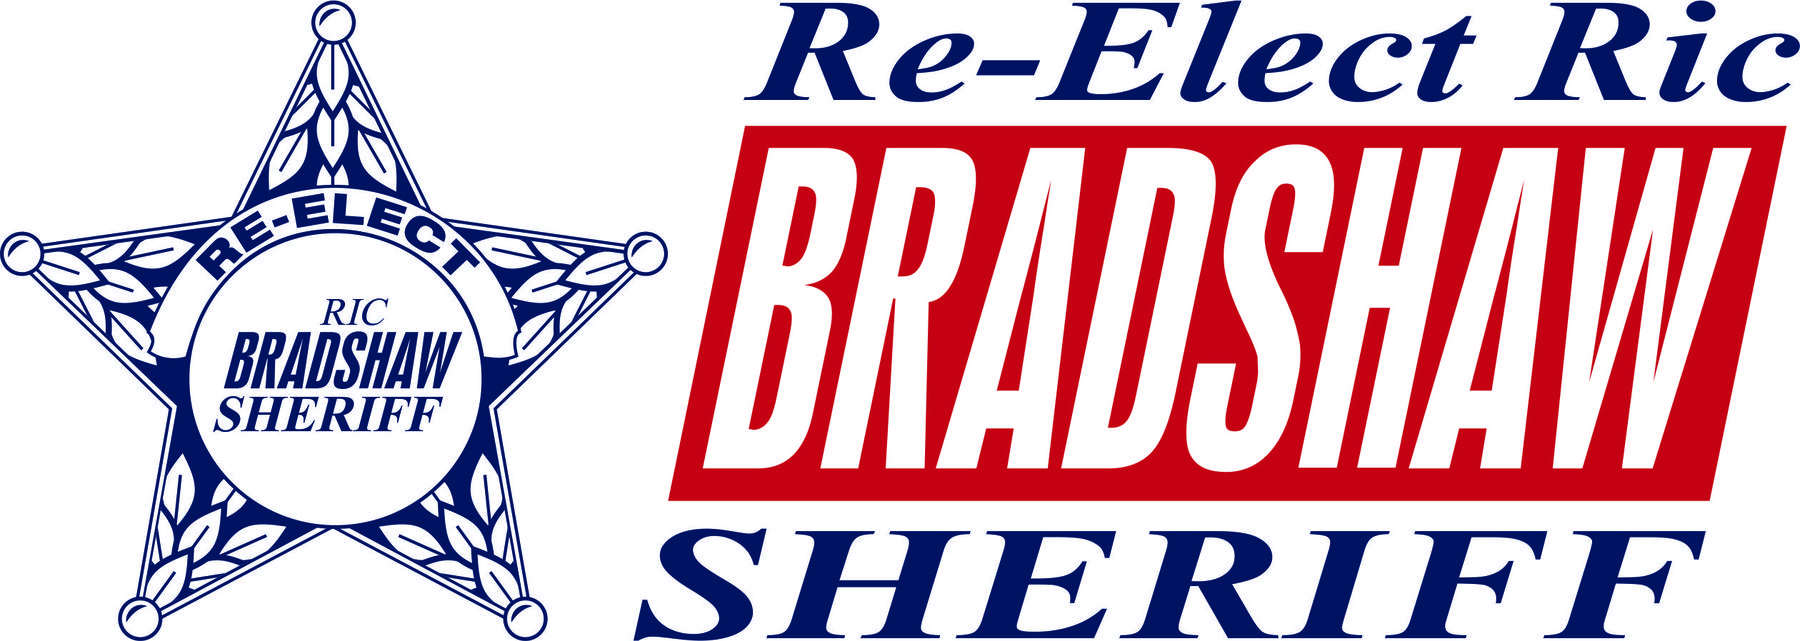 Ric Bradshaw for Sheriff: Campaign